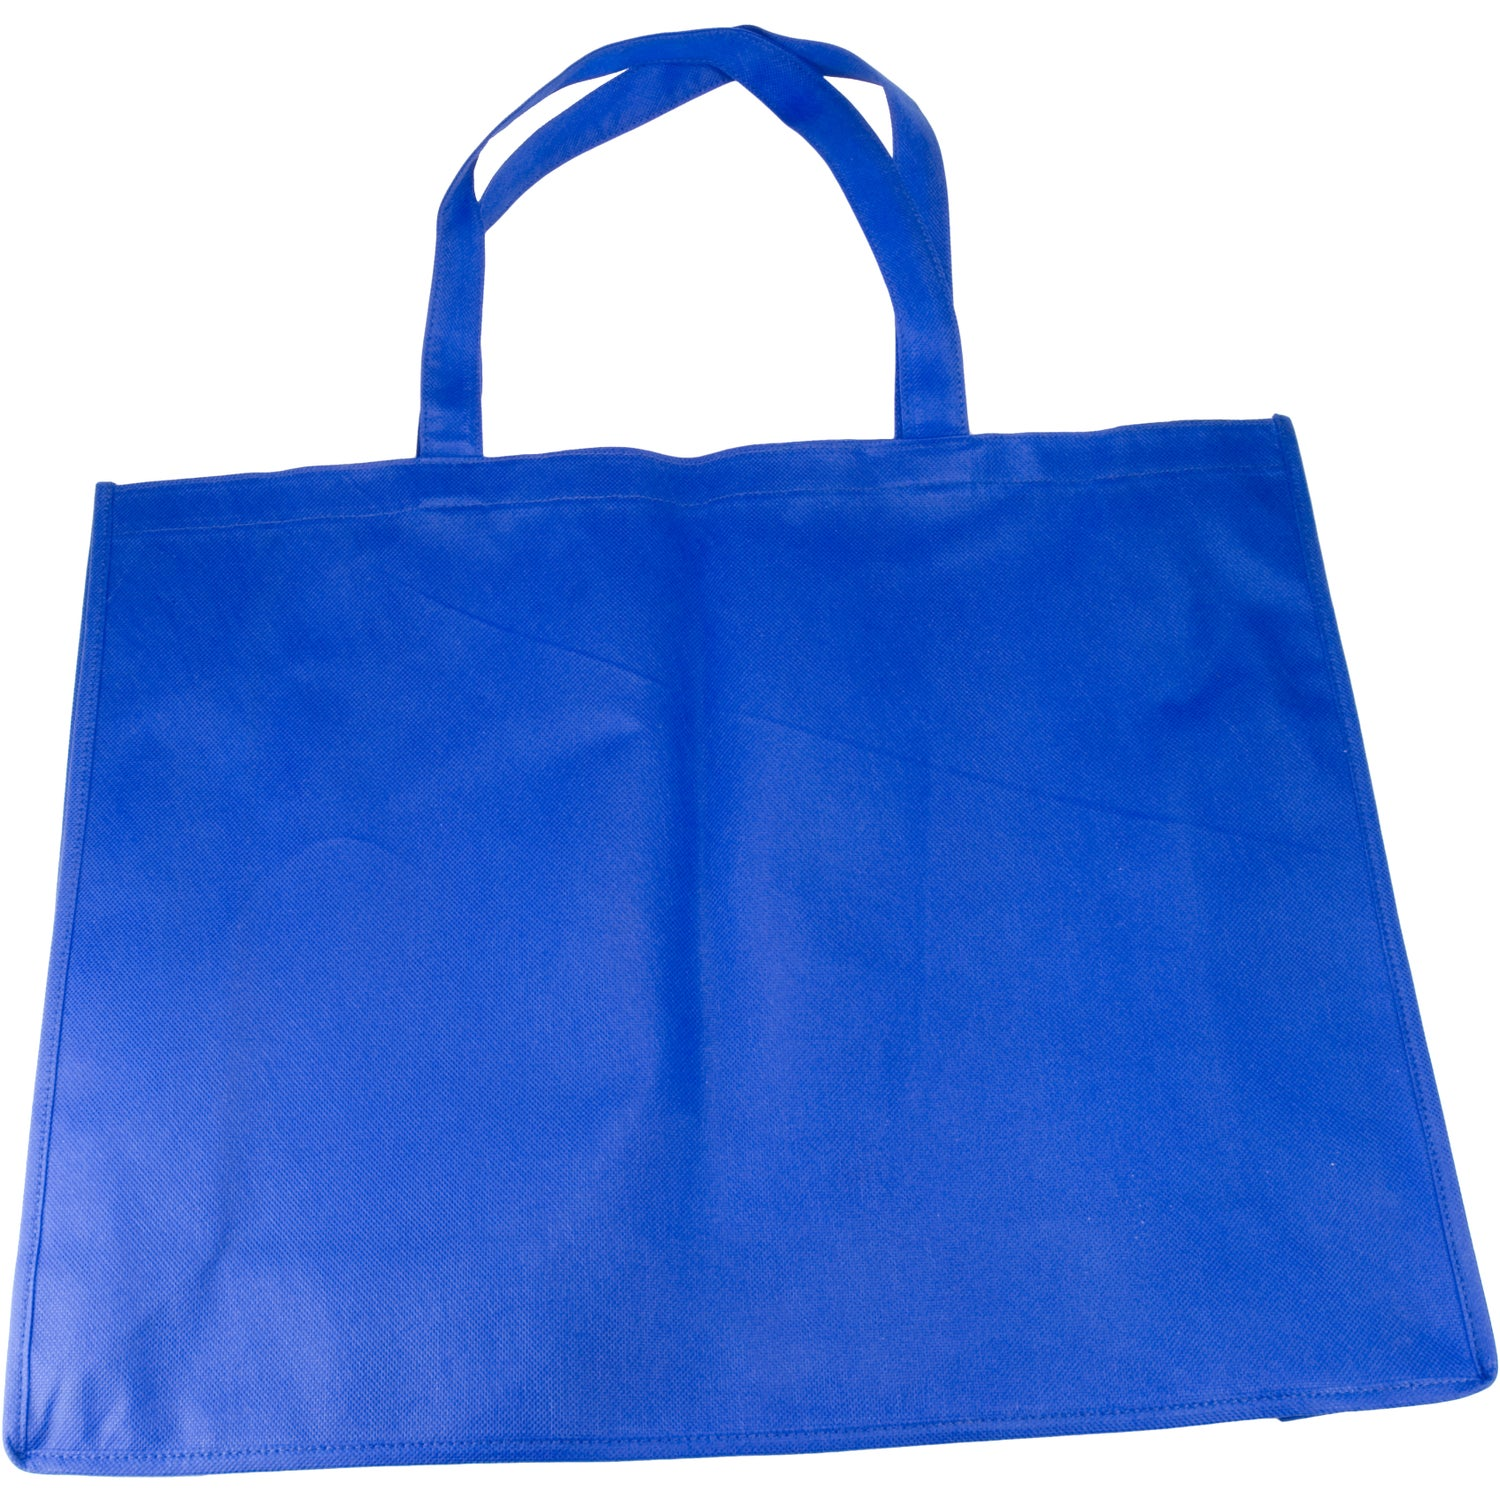 39a0fa5919e4 All Tsatsas bags are made in Germany. 38 cm width x 40 cm height x